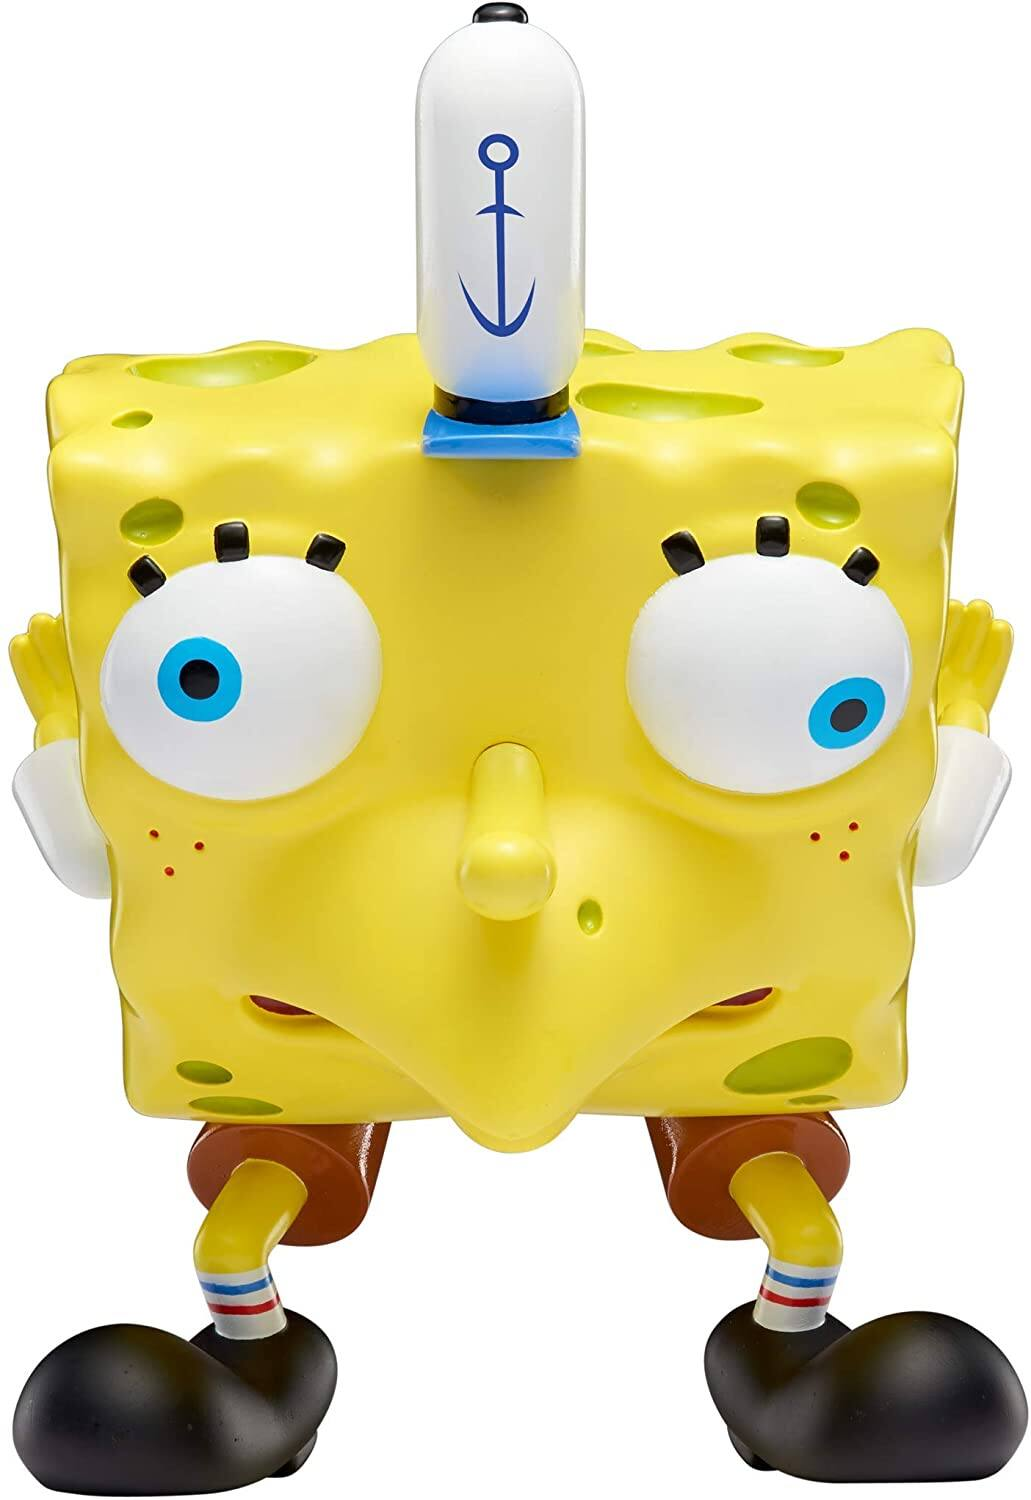 Mocking Spongebob Masterpiece Meme Figure